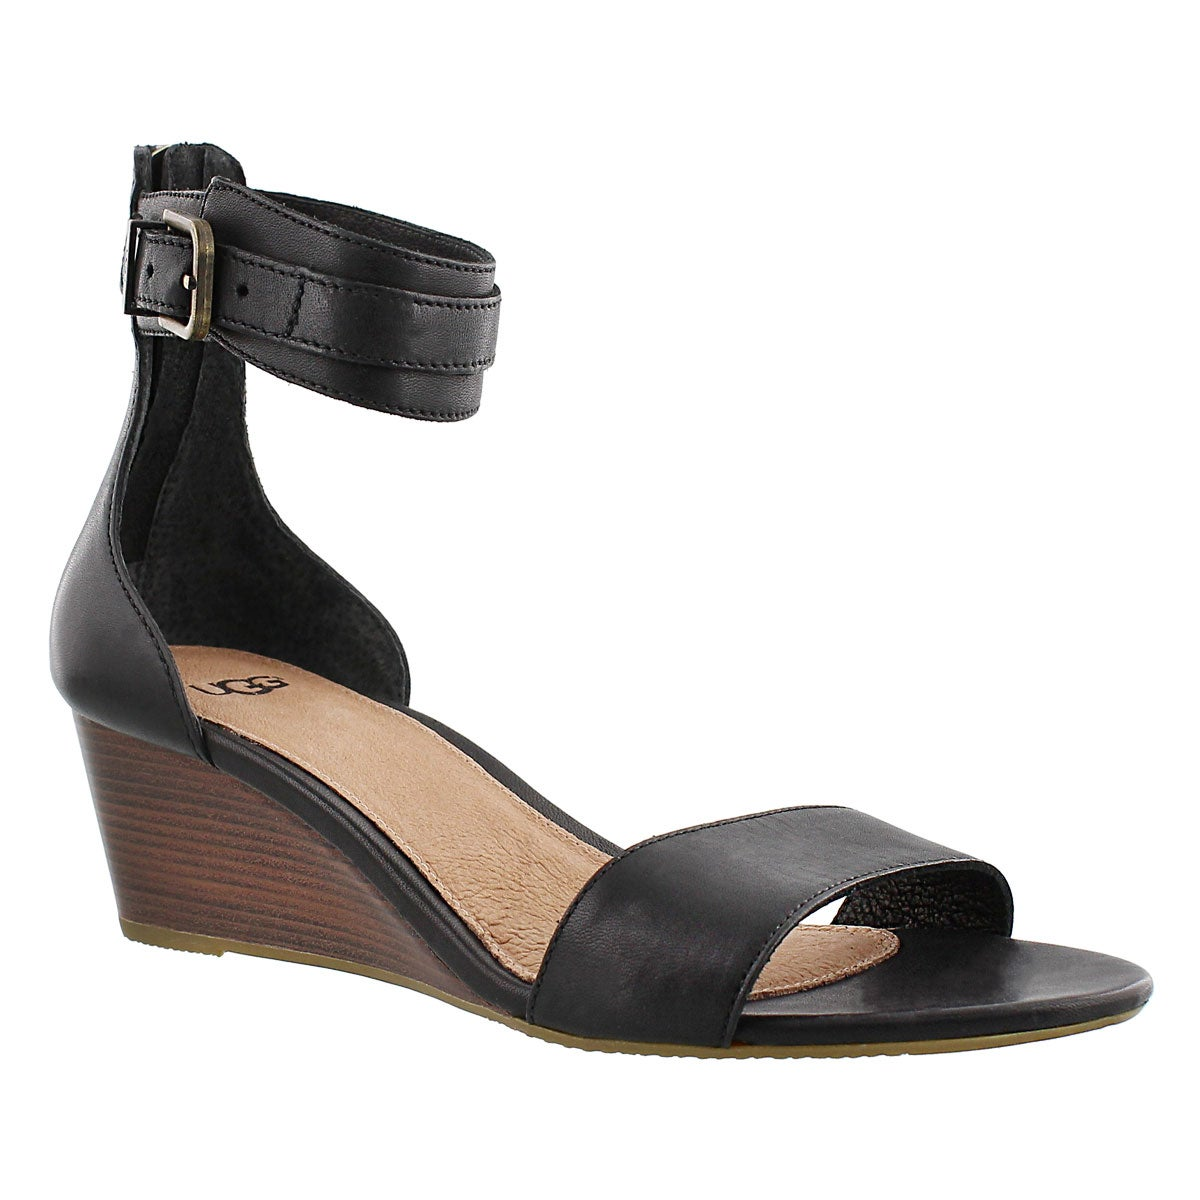 Women's CHAR black wedge ankle strap sandals